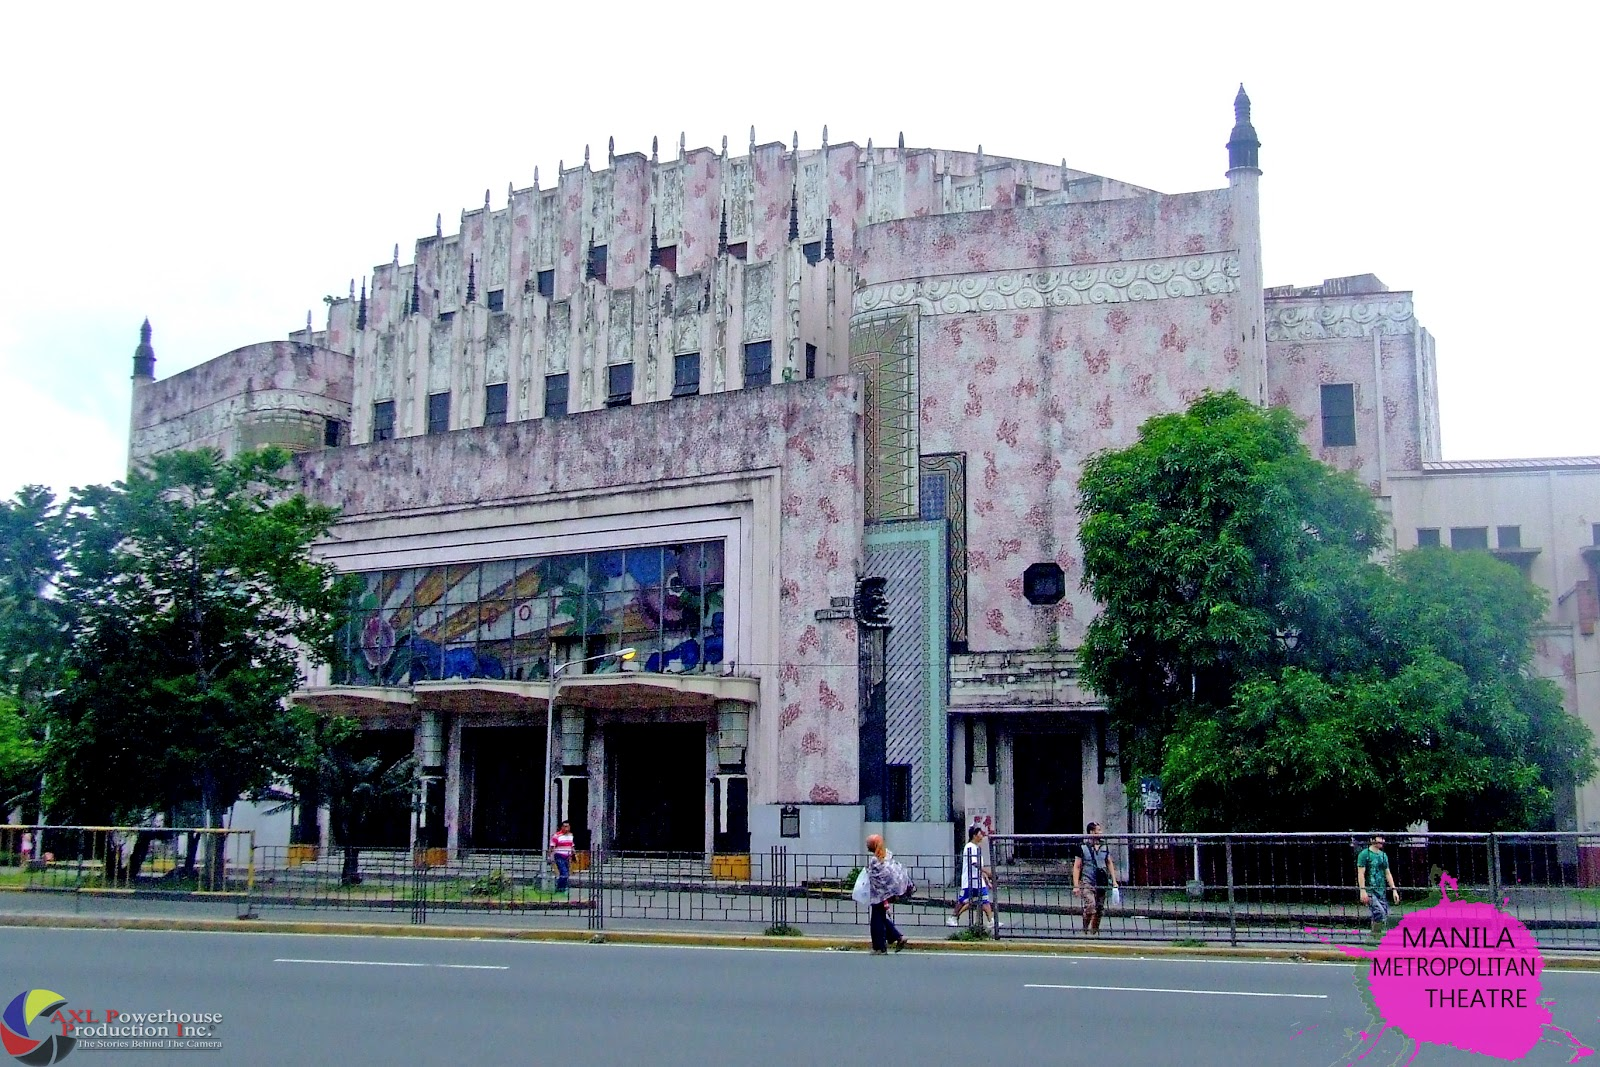 """manila metropolitan theater essay Summary of sa pula sa puti pula, sa puti (for the red rooster, for the white rooster) is a play in one act, written by francisco """"soc"""" rodrigo it was first staged on 10 sept 1939 by the university of the philippines dramatic club at the manila metropolitan theater originally, this was written by rodrigo in english for his class in dramatics."""